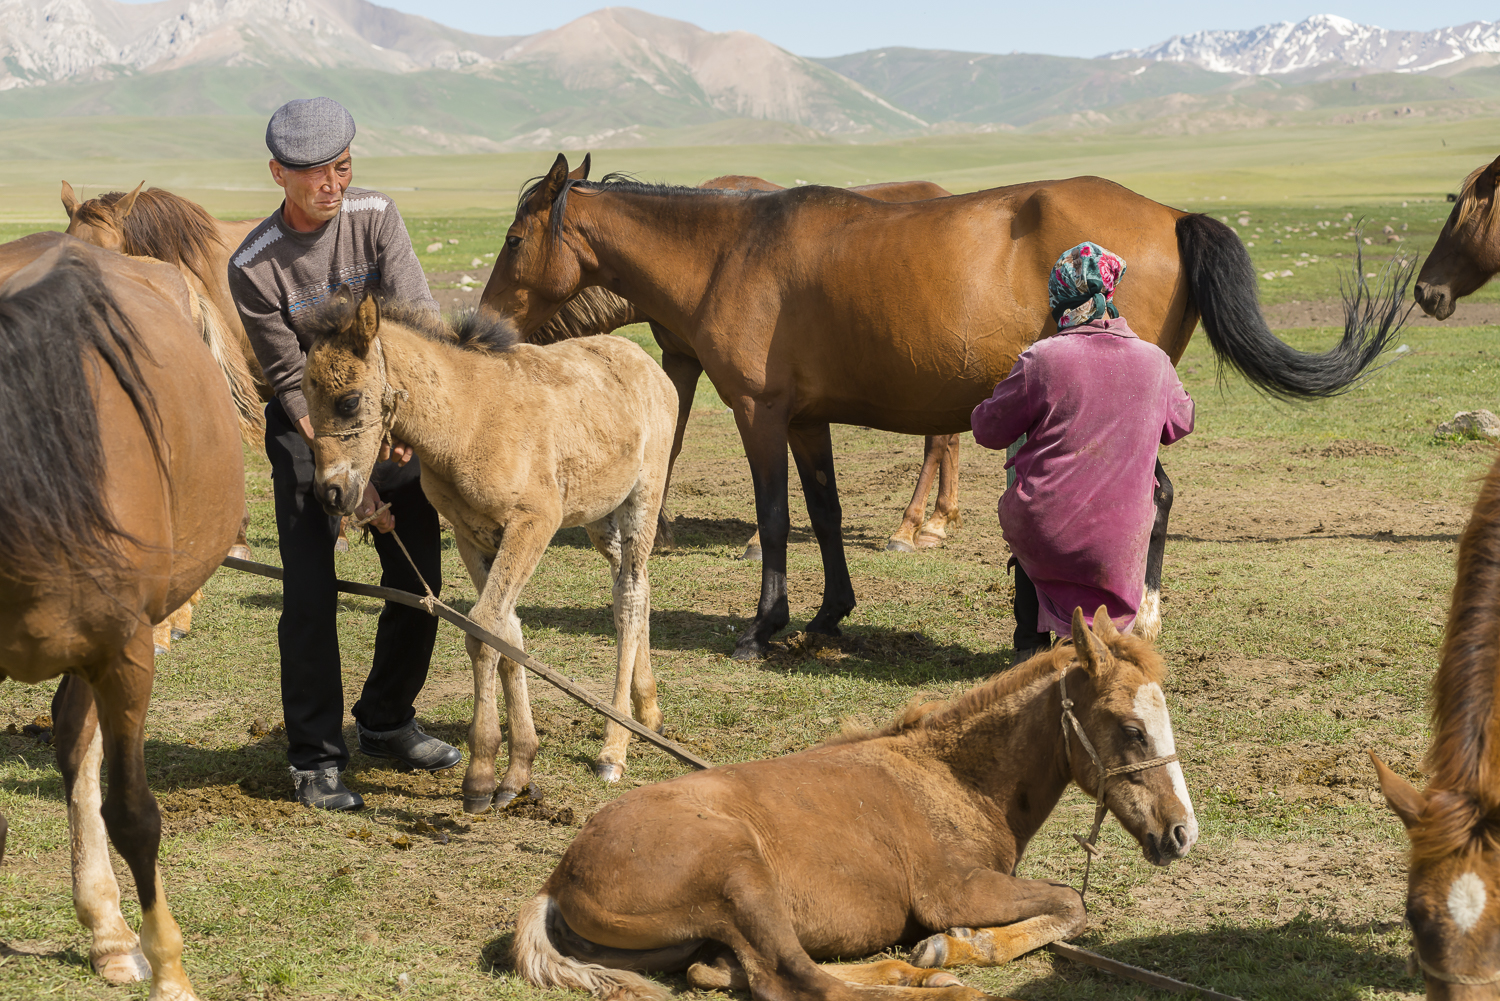 jo-kearney-photography-video-kyrgyzstan-nomads-milking-mares.jpg